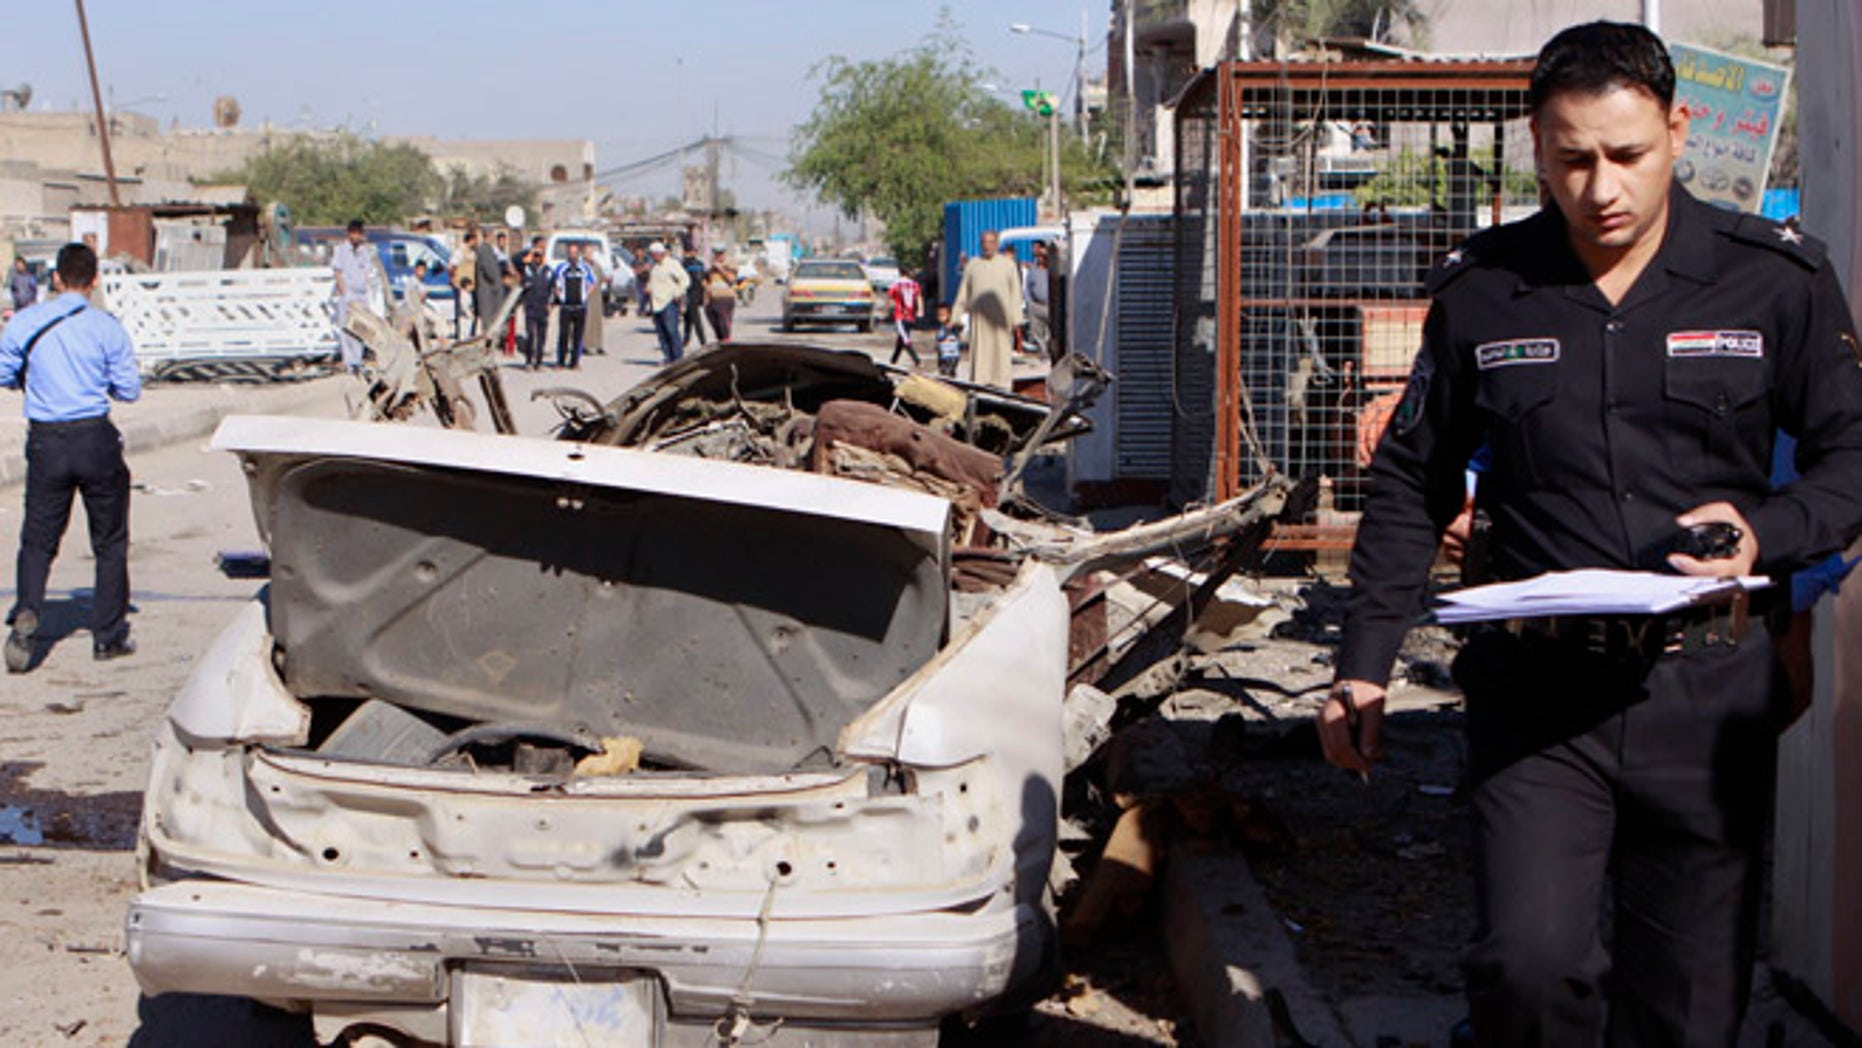 March 19, 2013: A policeman inspects the scene of a car bomb attack in the Shiite stronghold of Sadr City, Baghdad, Iraq.